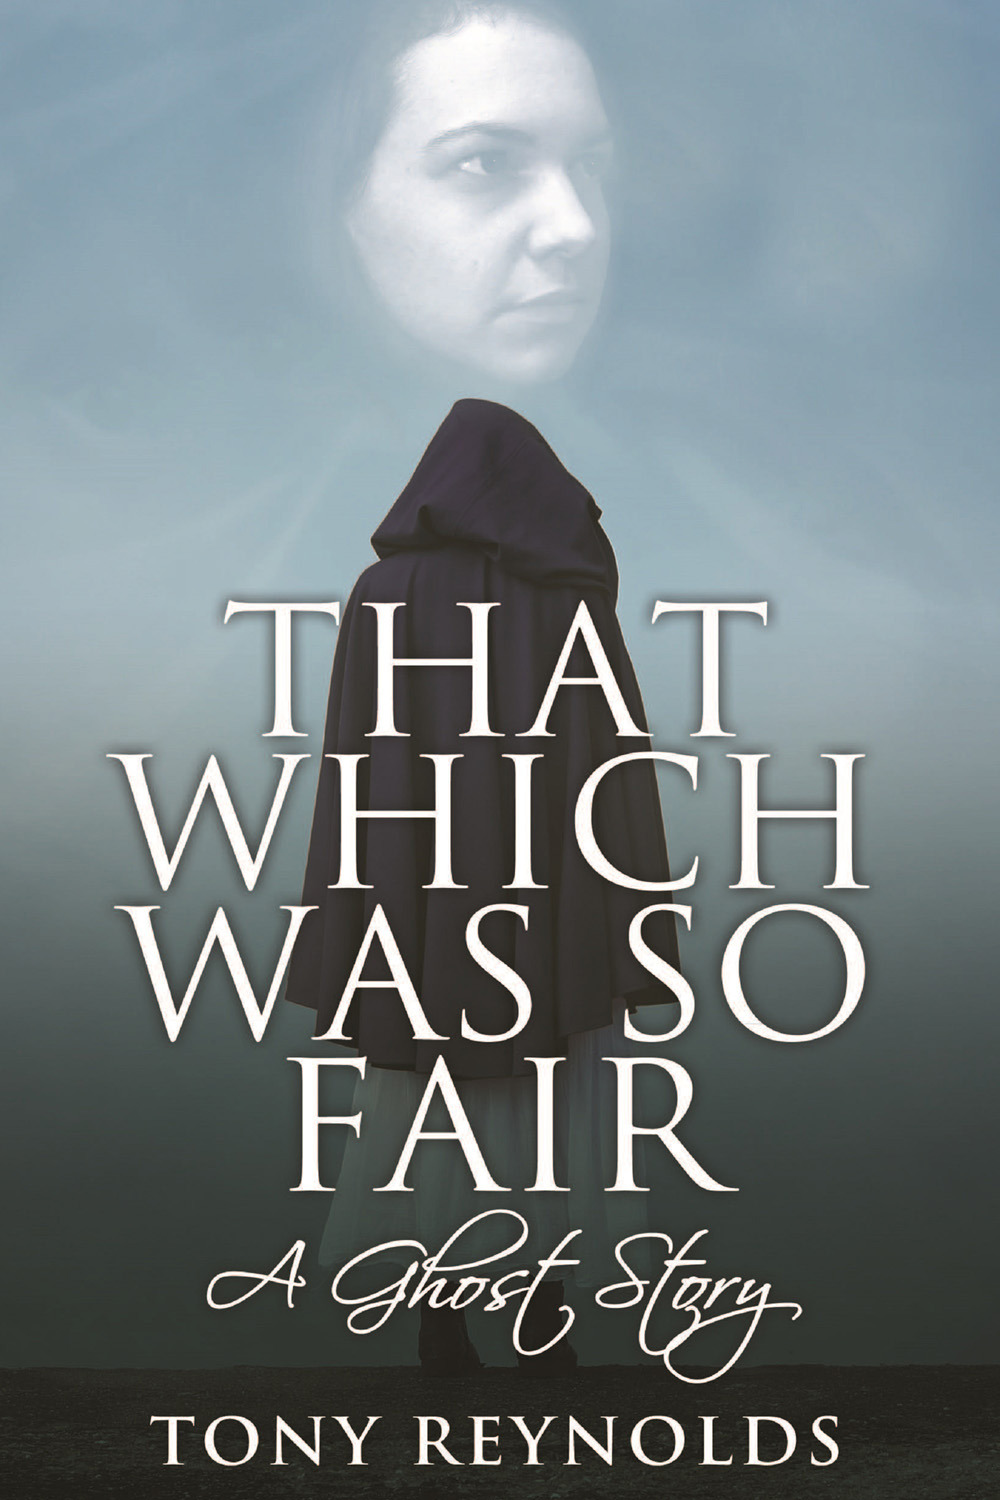 Reynolds, Tony - That Which Was So Fair - A Ghost Story, ebook